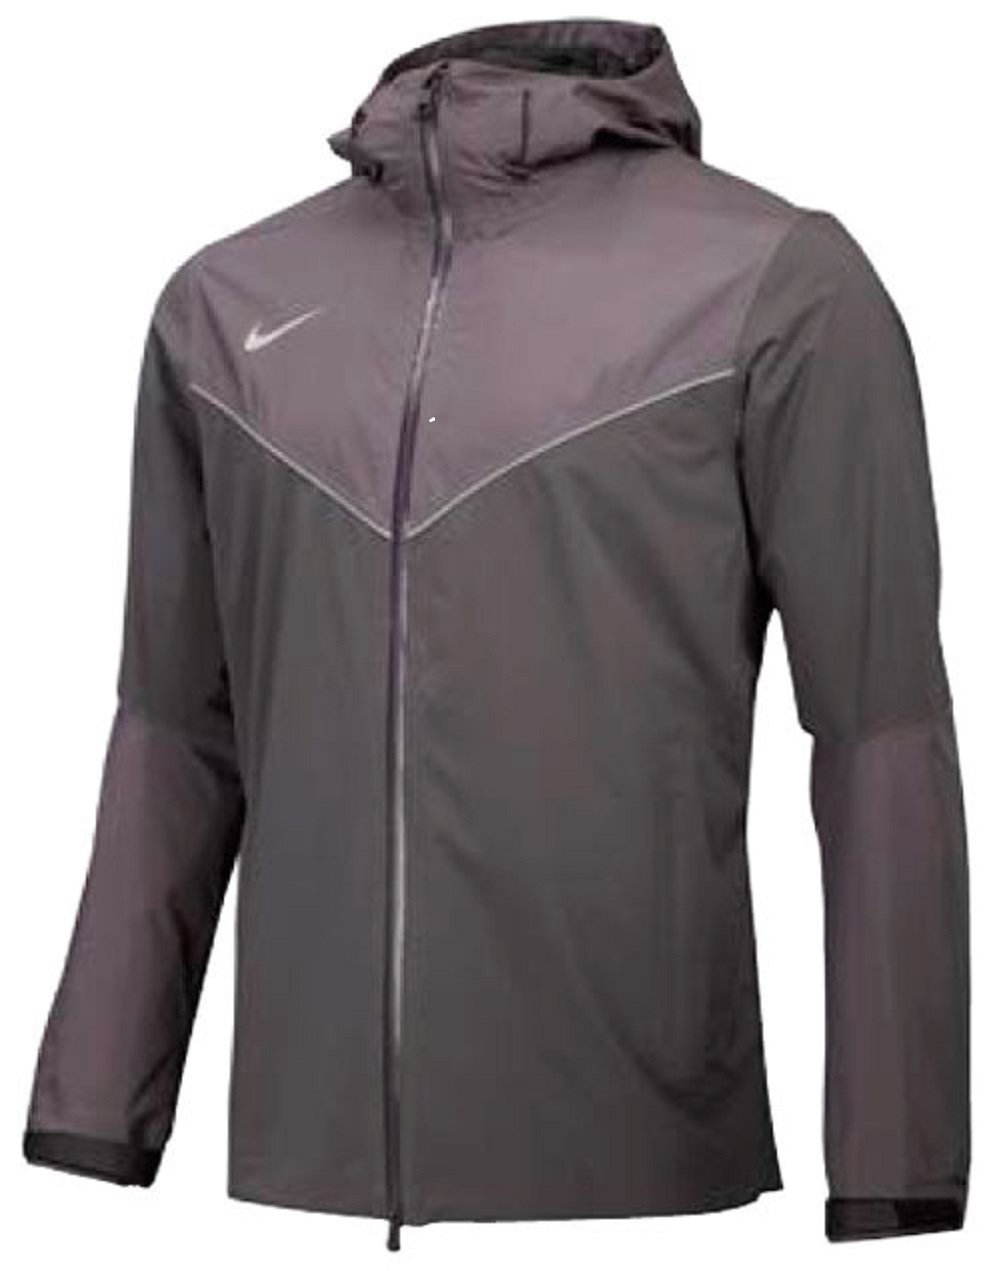 3400bd7749 Amazon.com  Nike Waterproof Jacket Large  Sports   Outdoors